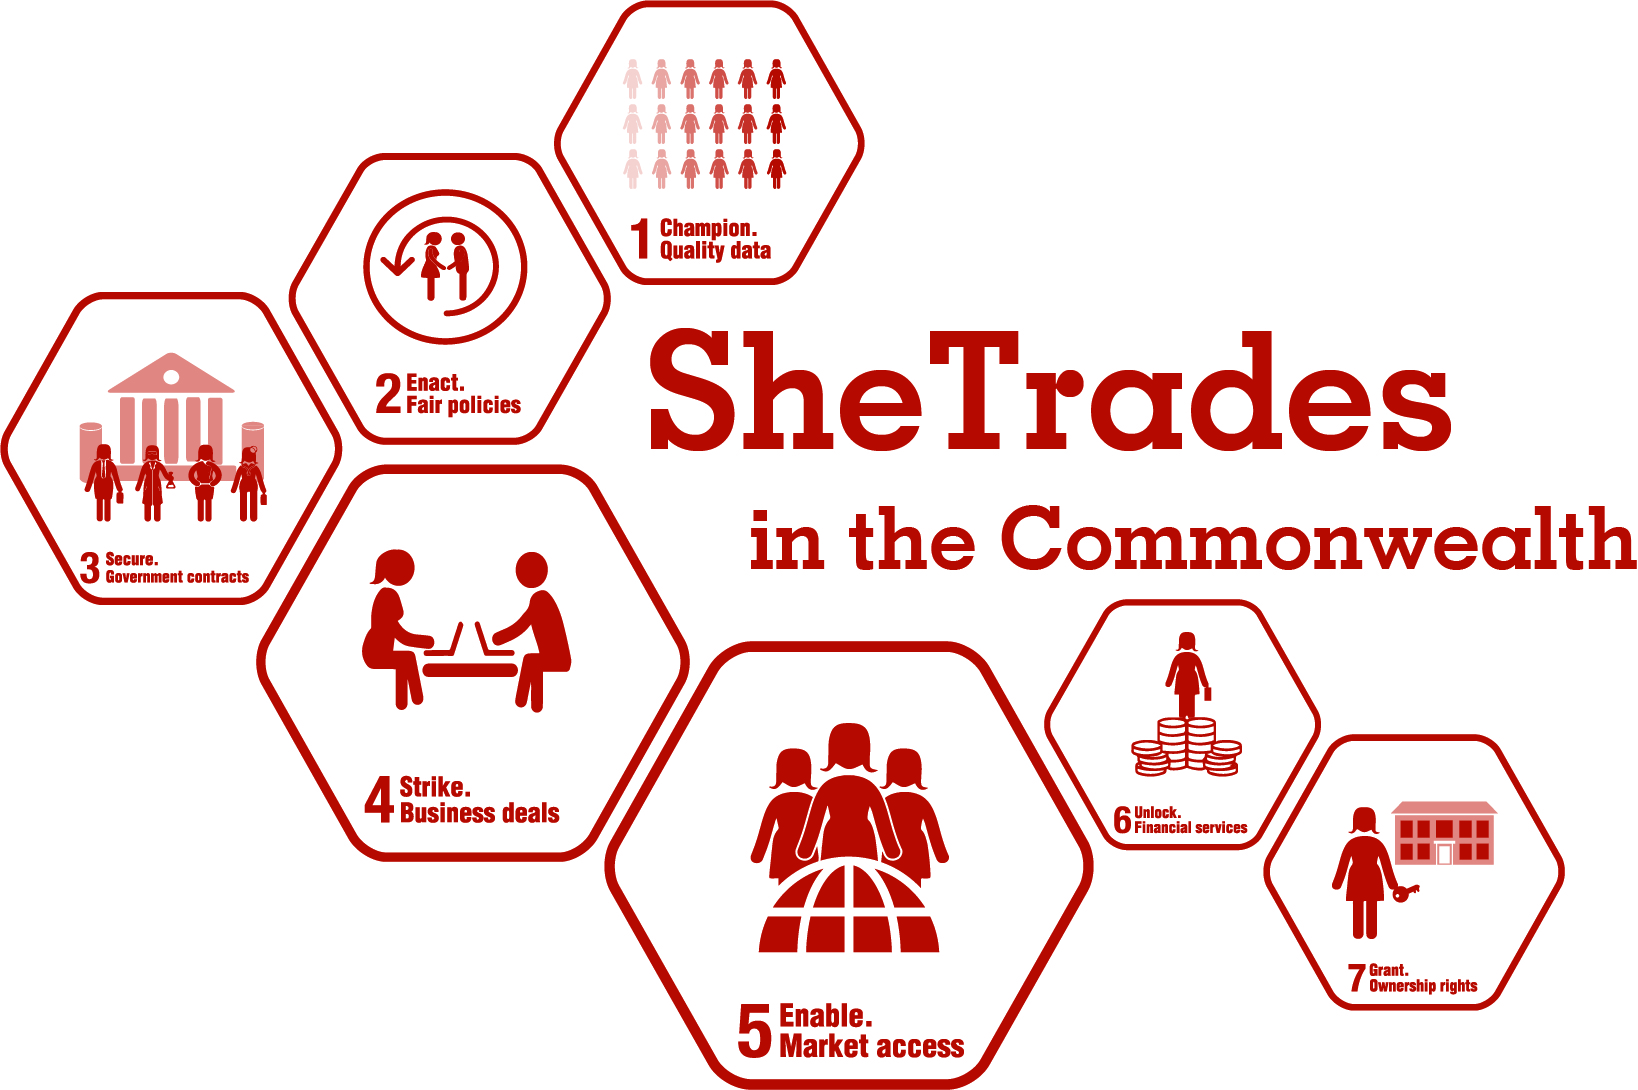 SheTrades in the Commonwealth